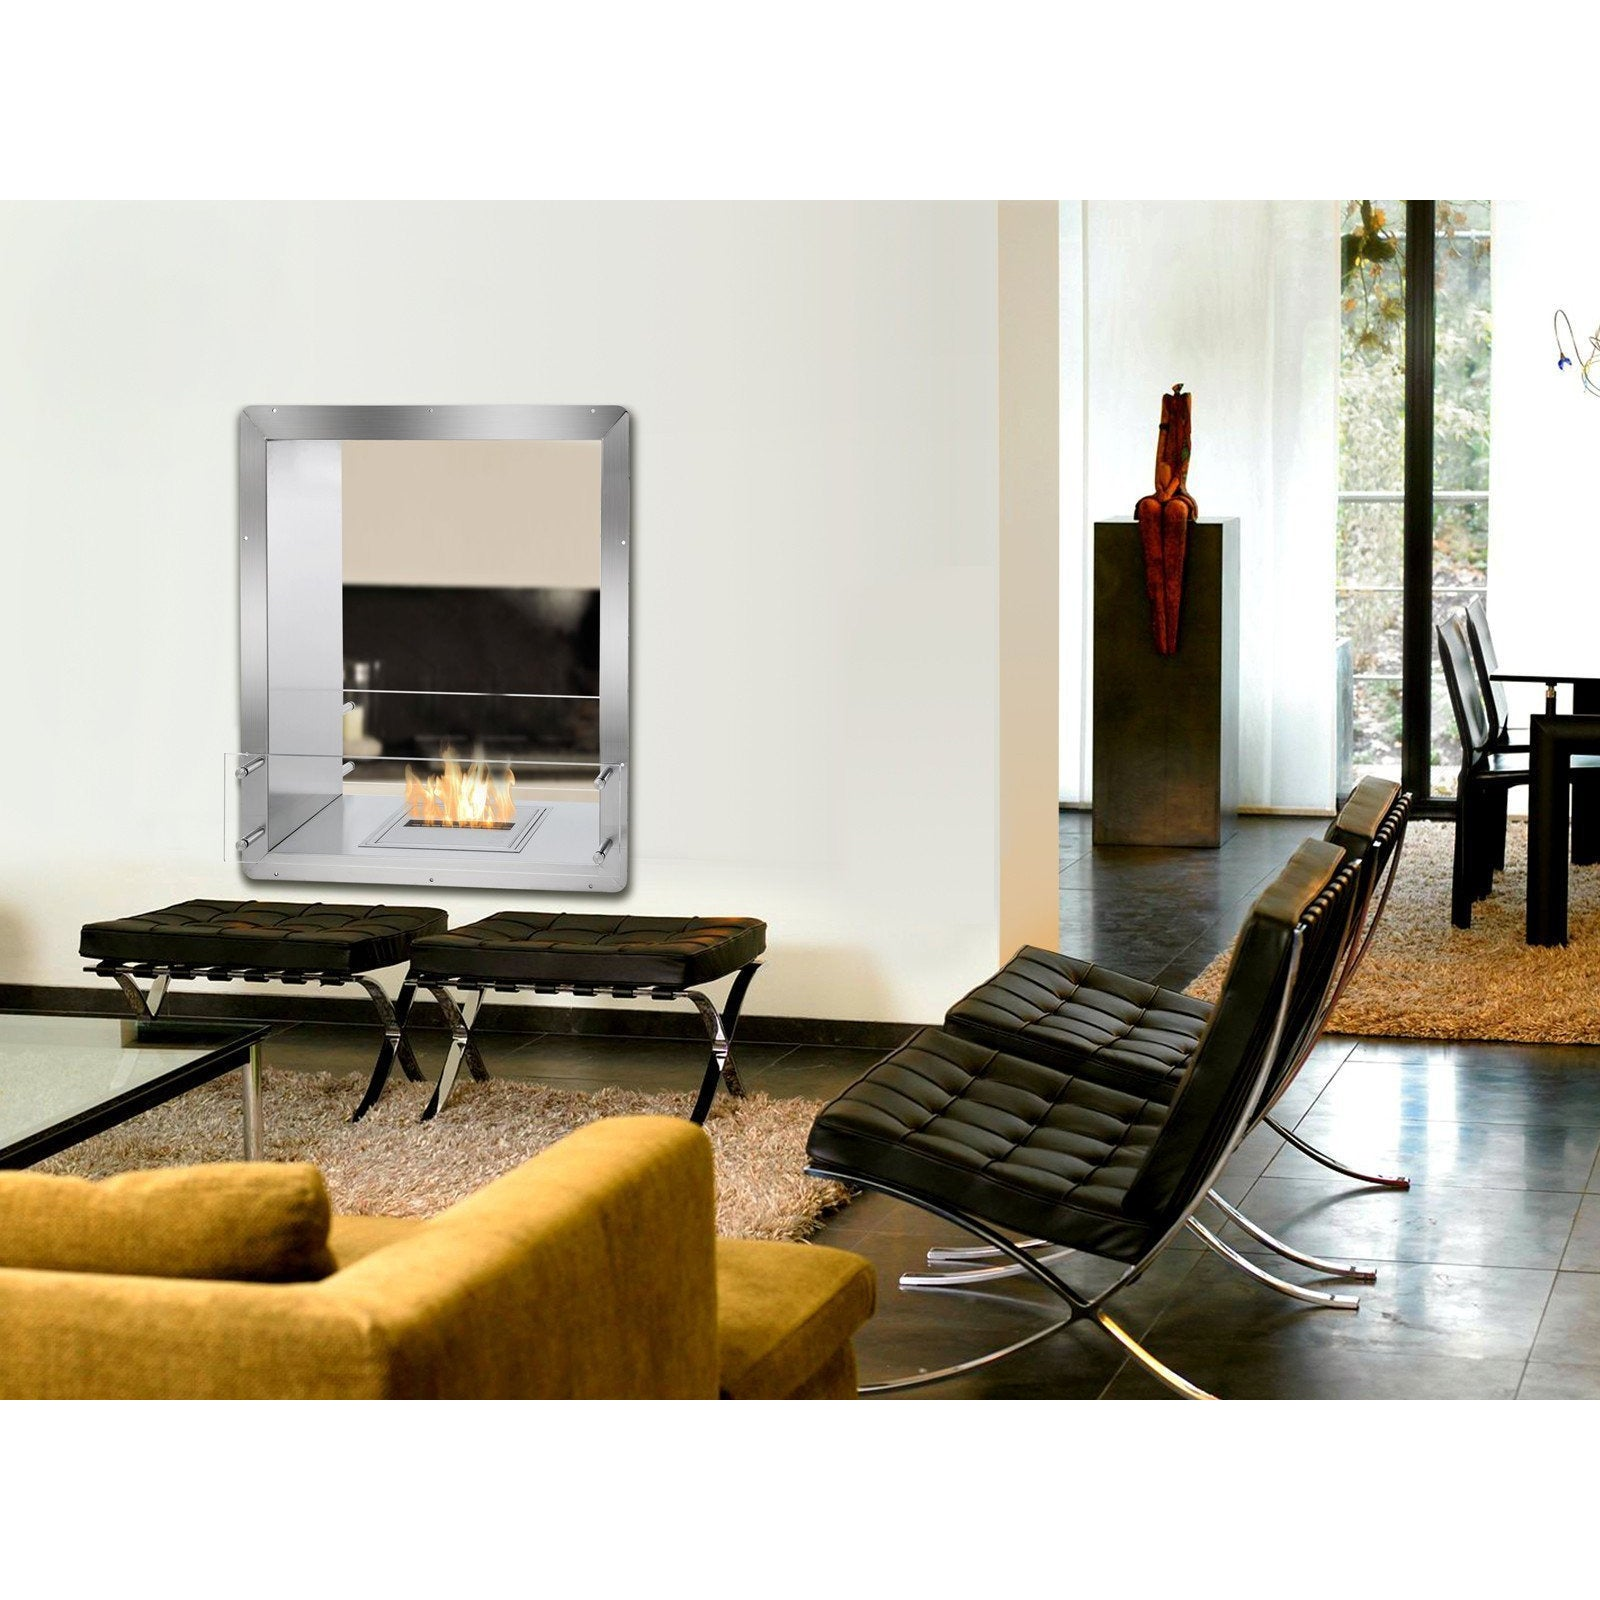 "Ethanol Firebox - Ignis Ethanol Firebox - 28"" Built-in See-Through Ventless Fireplace (FB1212-D)"